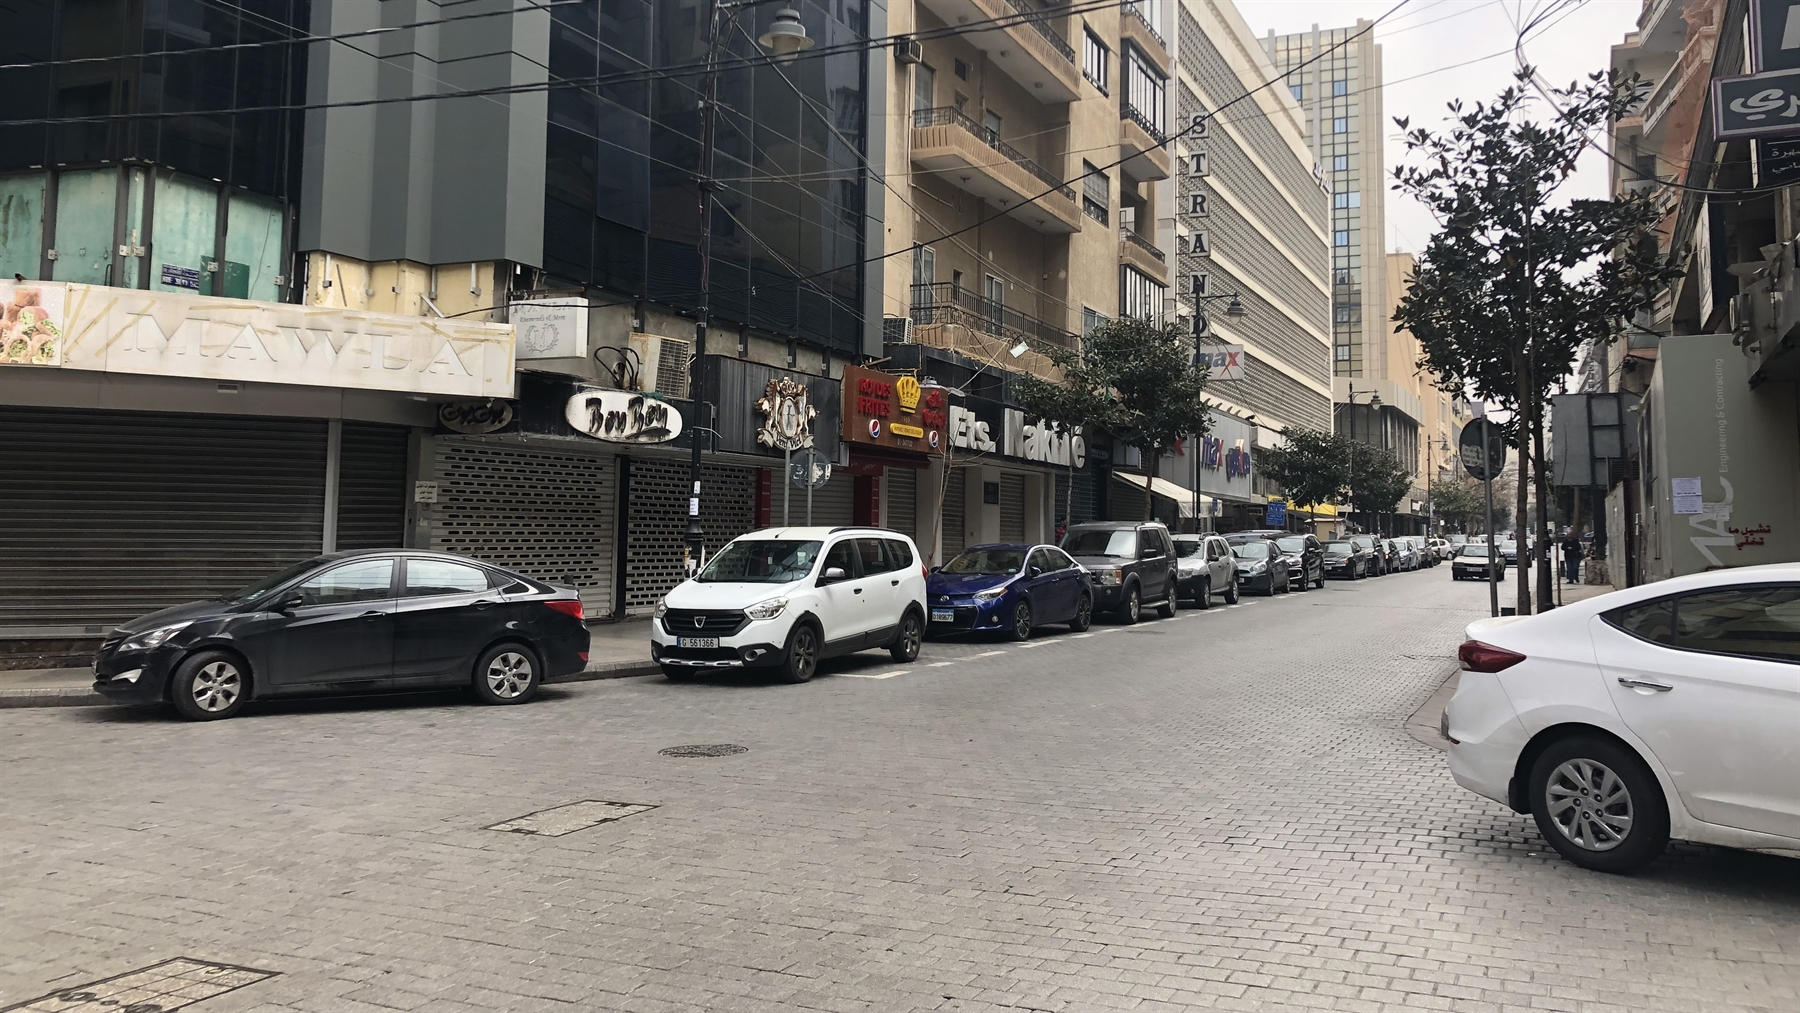 Stores and restaurants are closed on Hamra street (Photo: Mona Harb, April 2020)